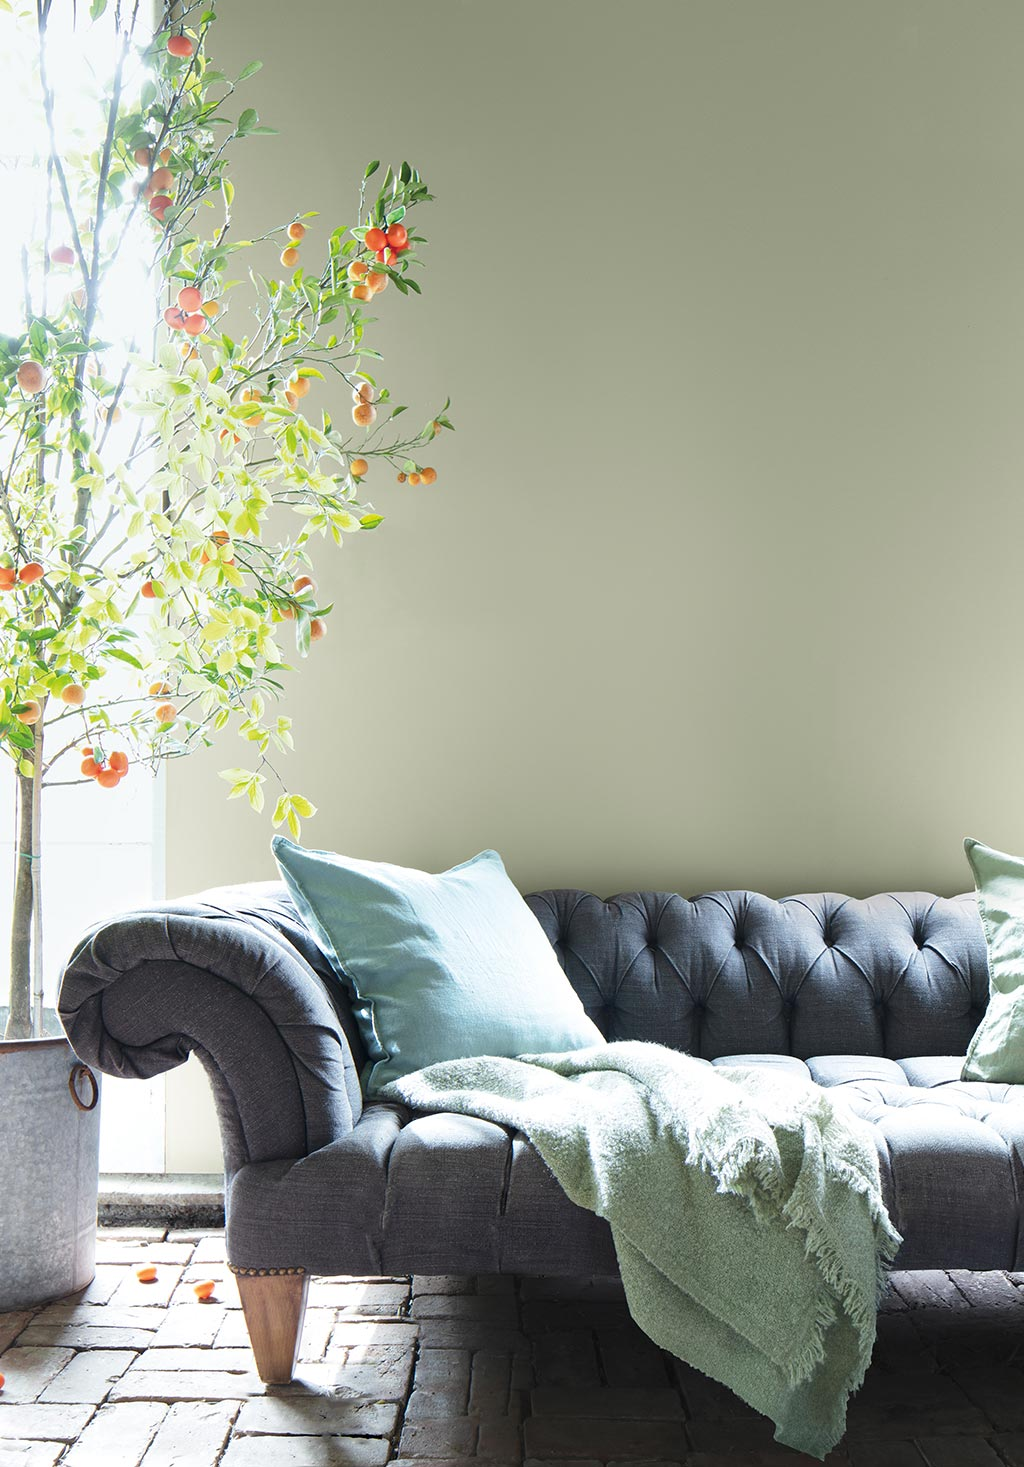 A living room with classic gray couch, green accent pillows, indoor tree, and sage green-painted walls with wood trim.